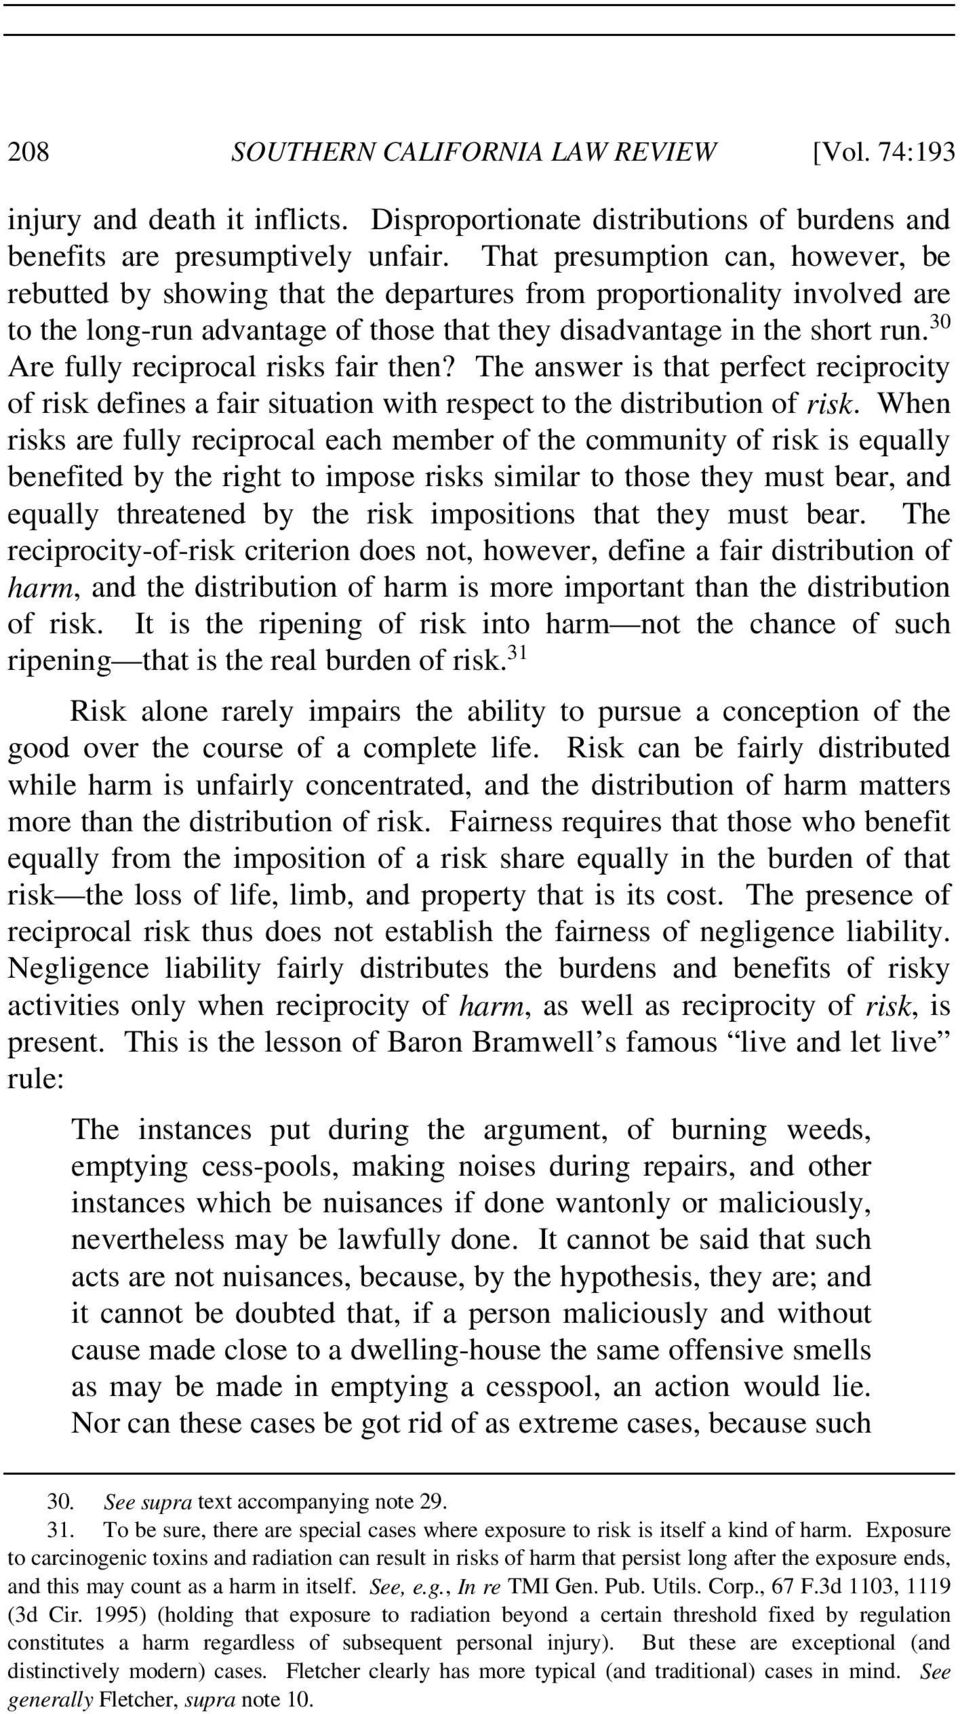 30 Are fully reciprocal risks fair then? The answer is that perfect reciprocity of risk defines a fair situation with respect to the distribution of risk.